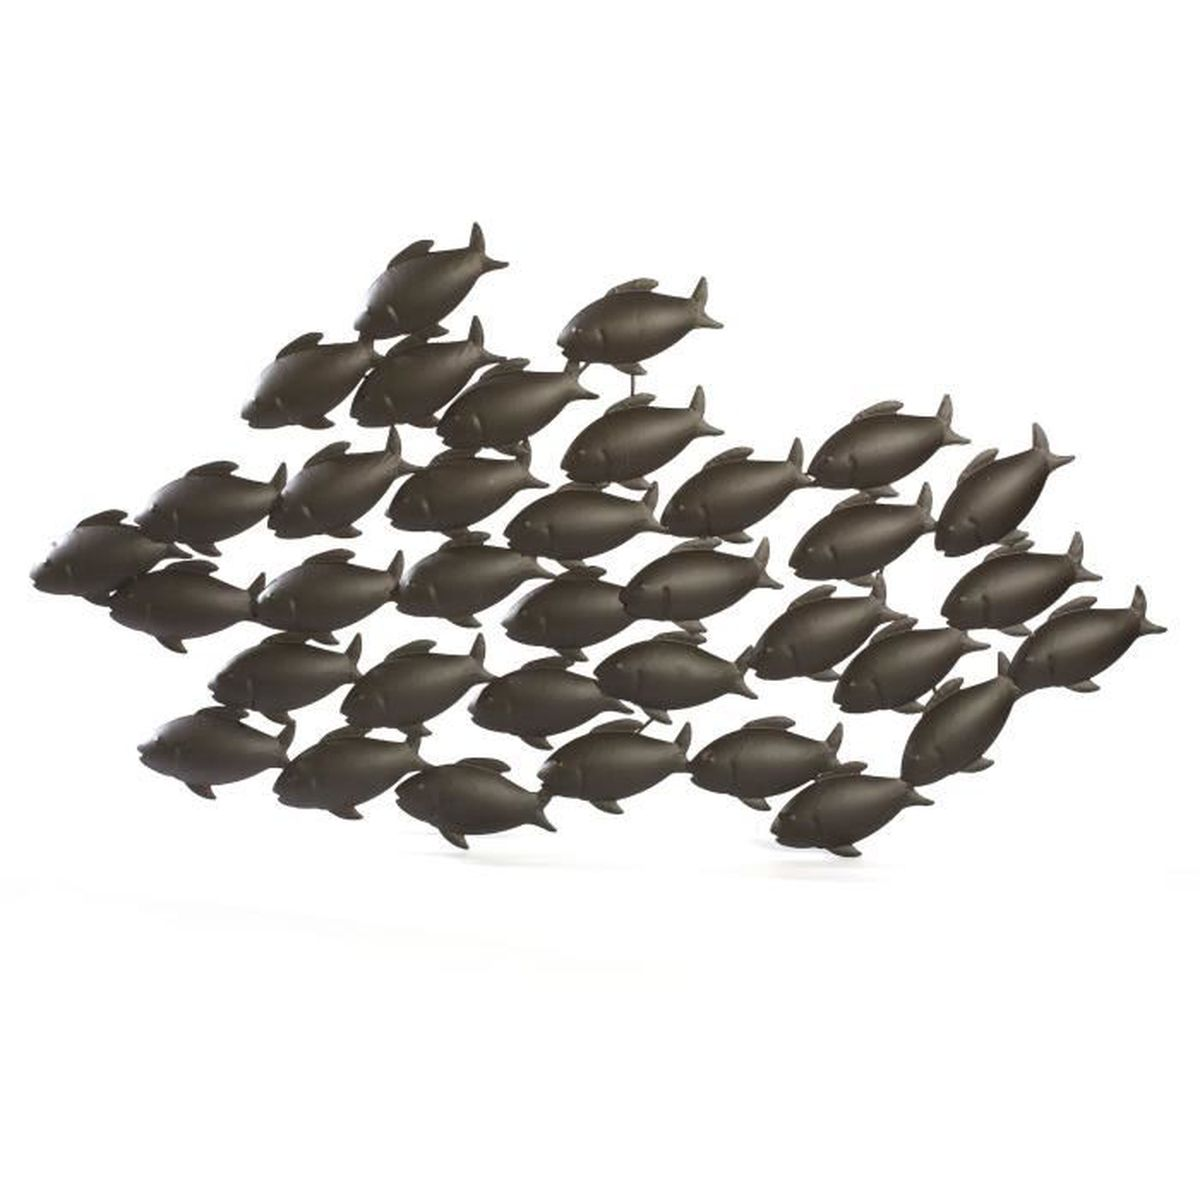 Sea d coration murale poissons en m tal achat vente for Decoration murale en metal noir